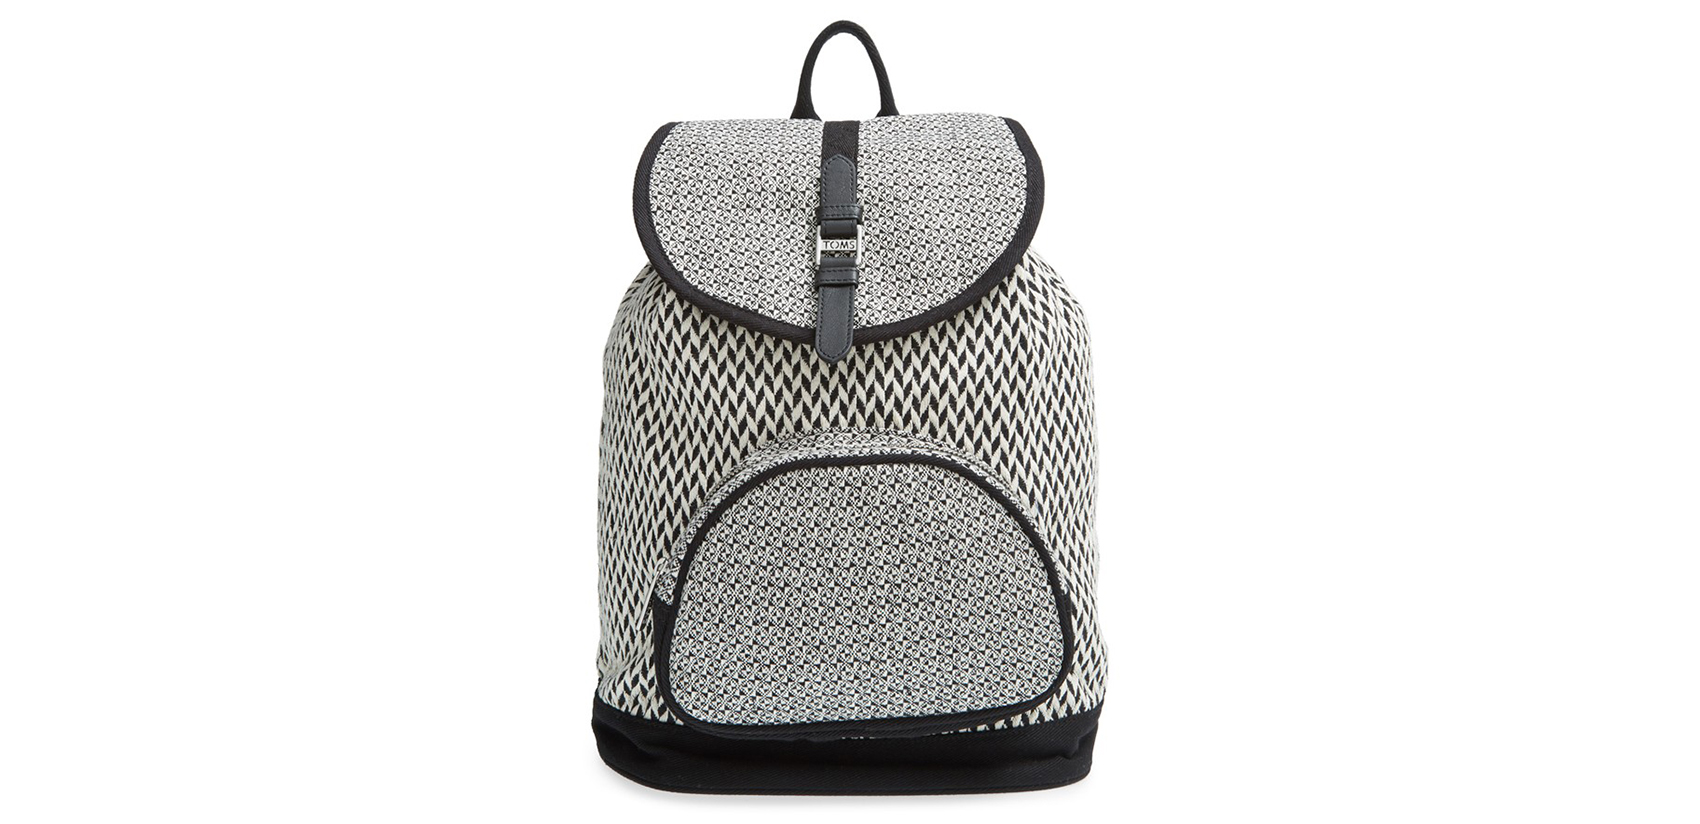 82e1e47f7b0e 10 Stylish School Bags for College Students